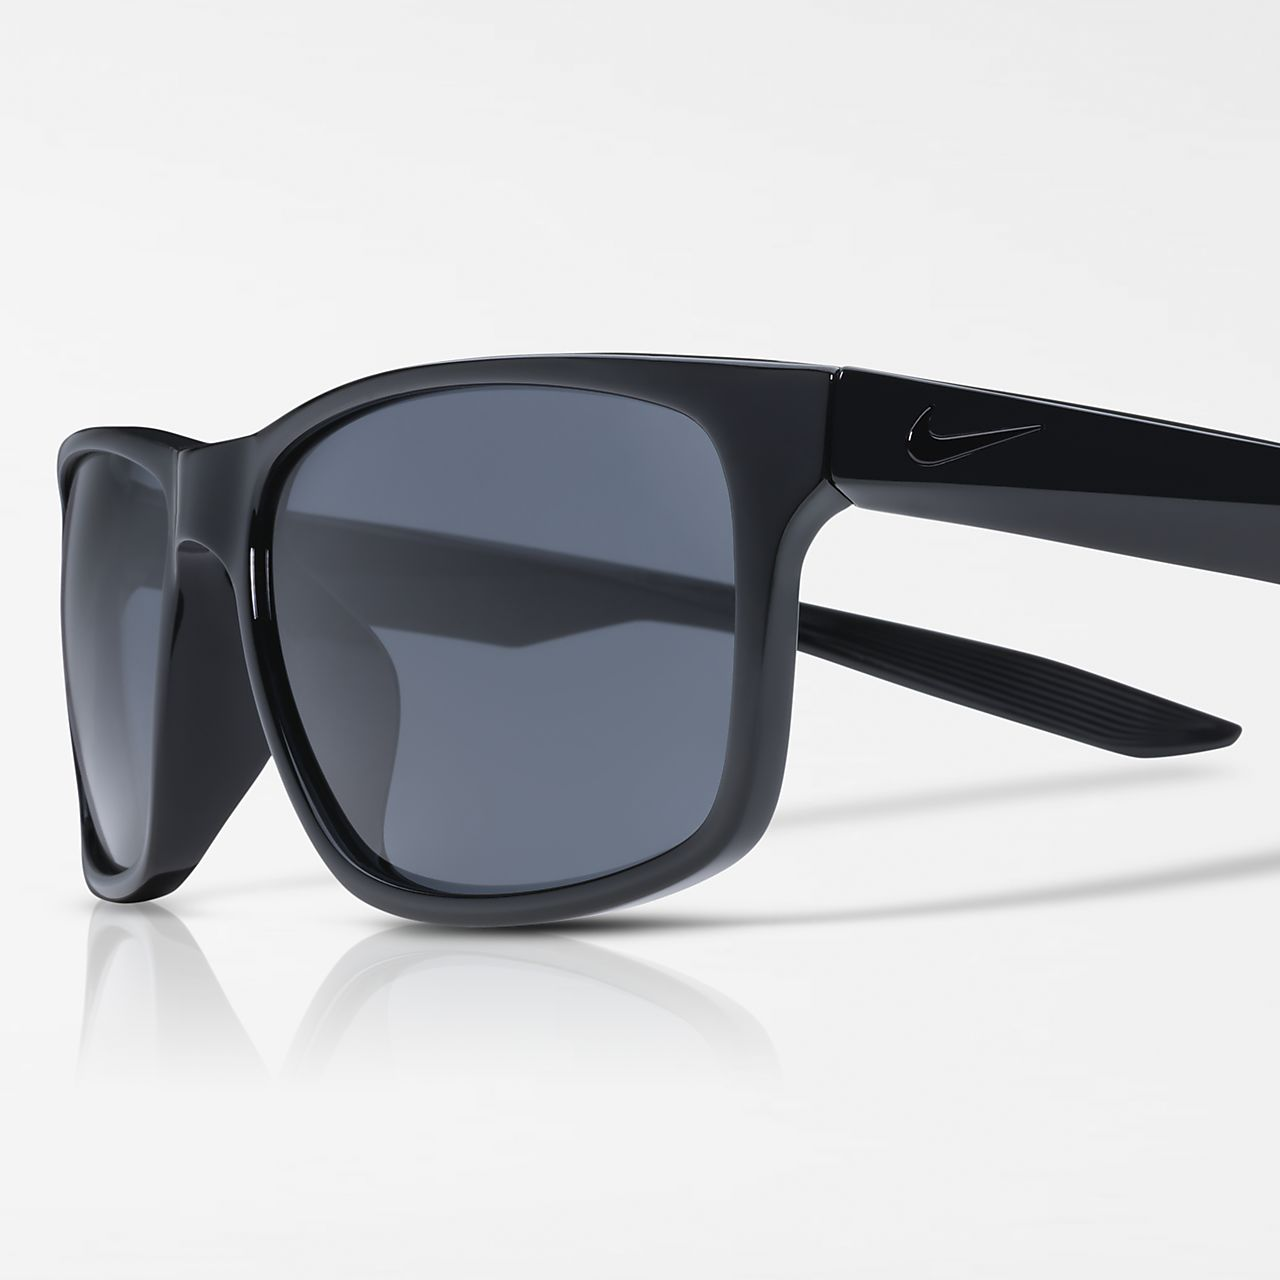 Nike Lunettes De Soleil Essential Chaser doxCeB